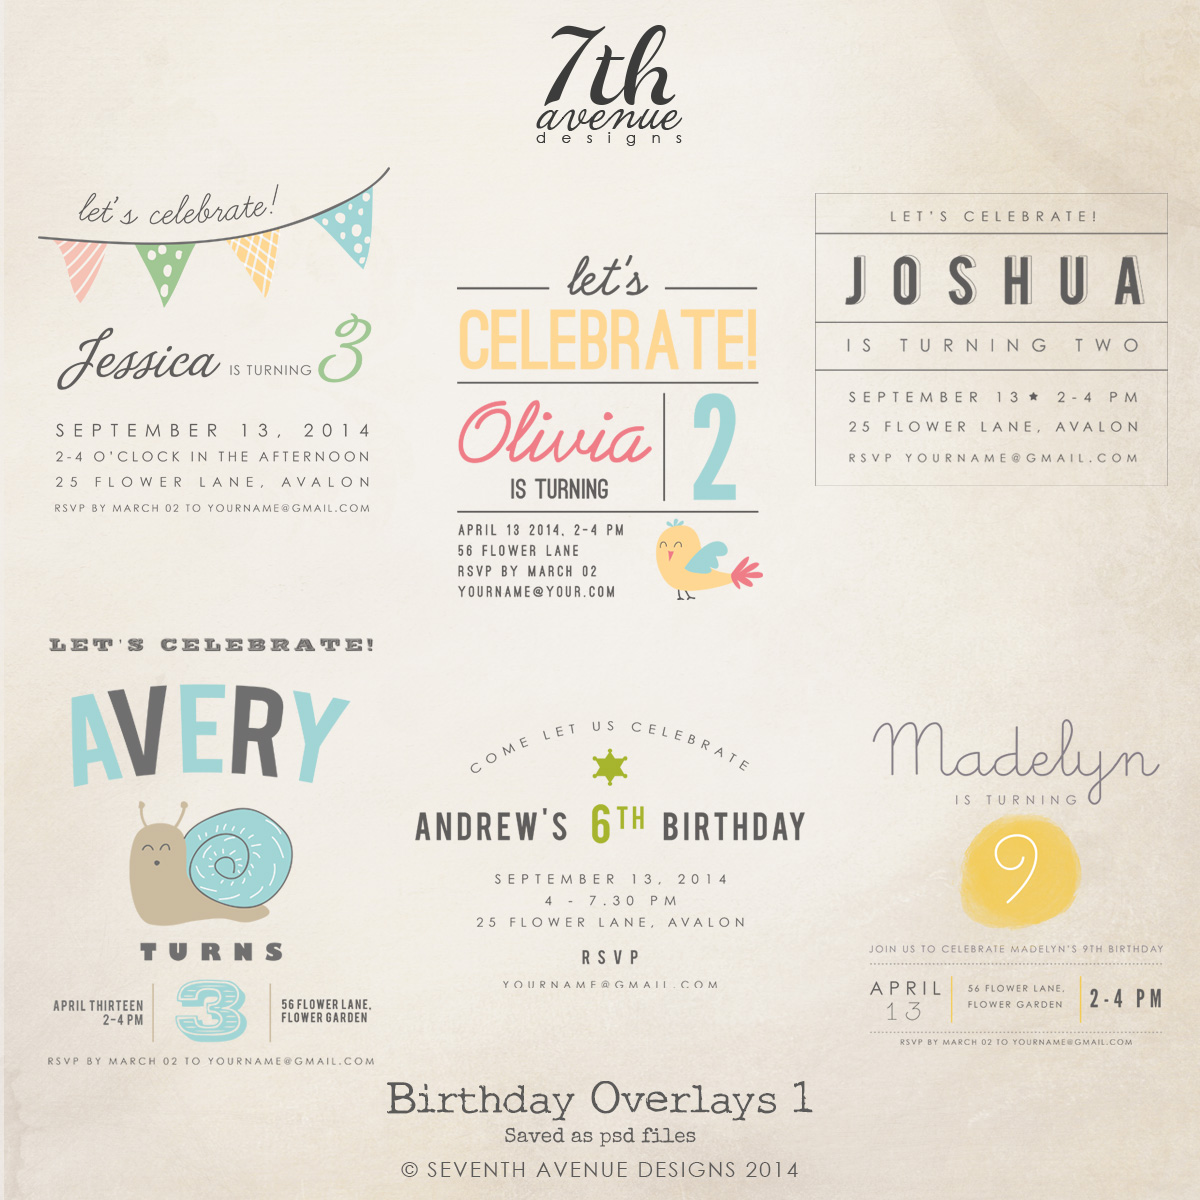 Birthday Overlays vol.1